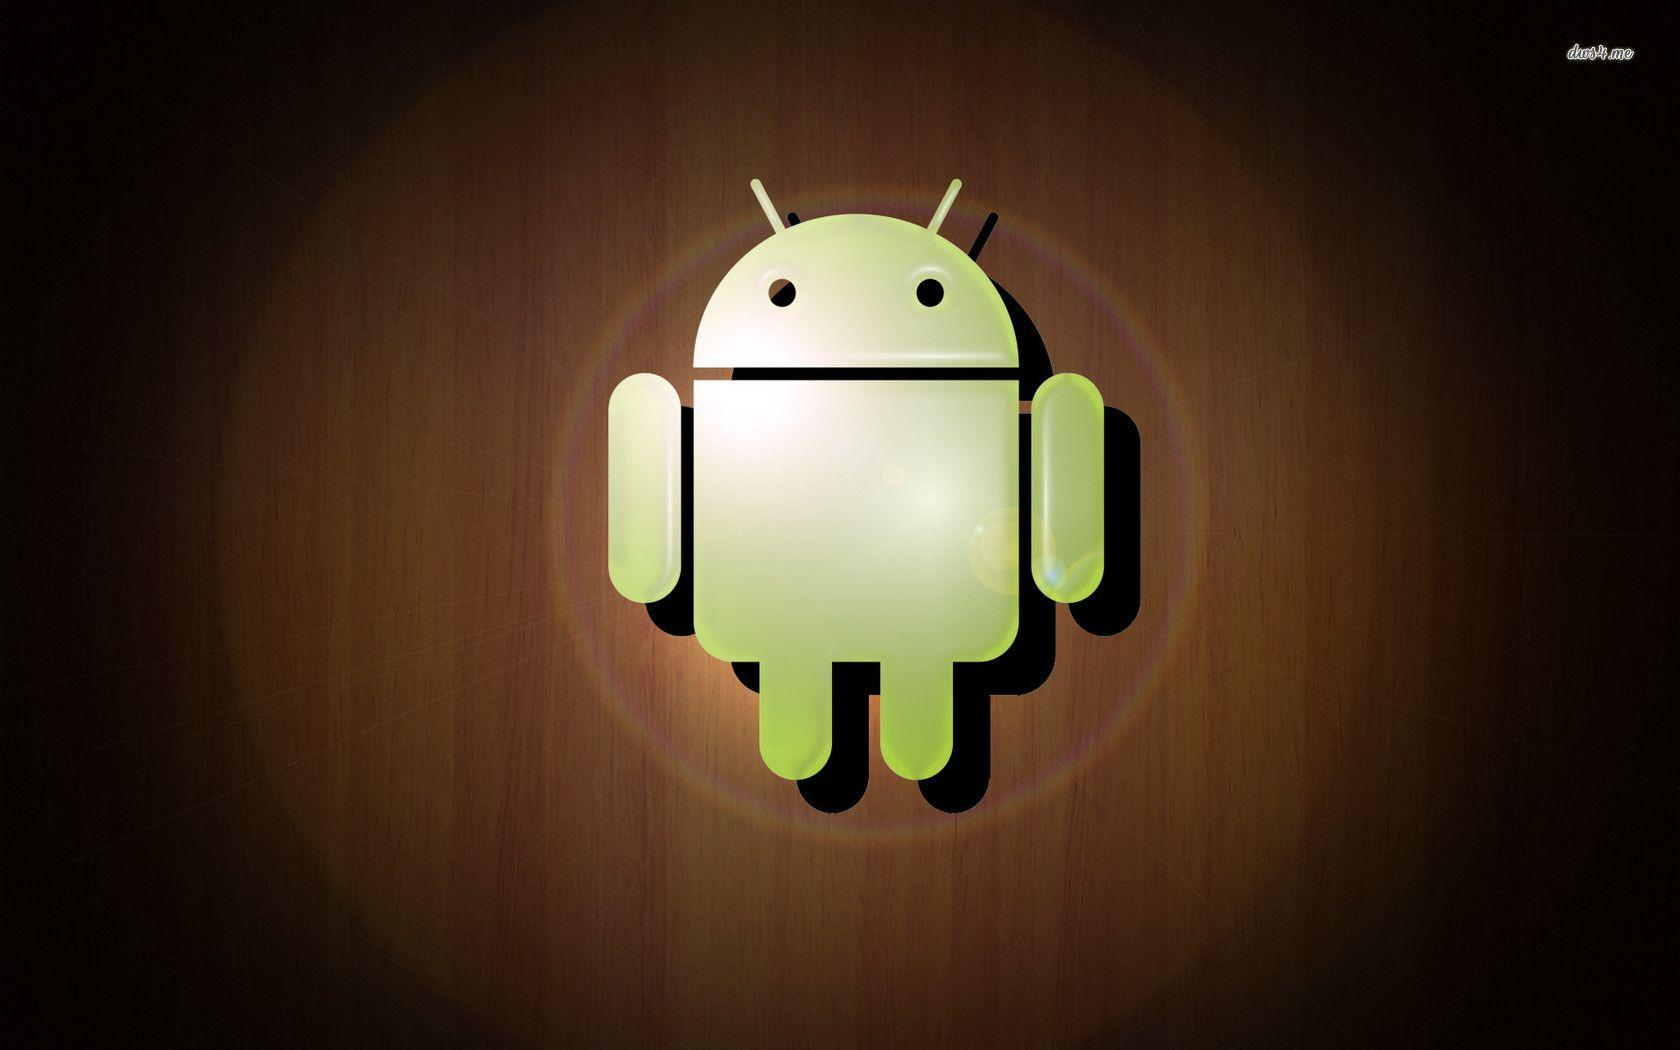 Android logo on wooden texture wallpapers